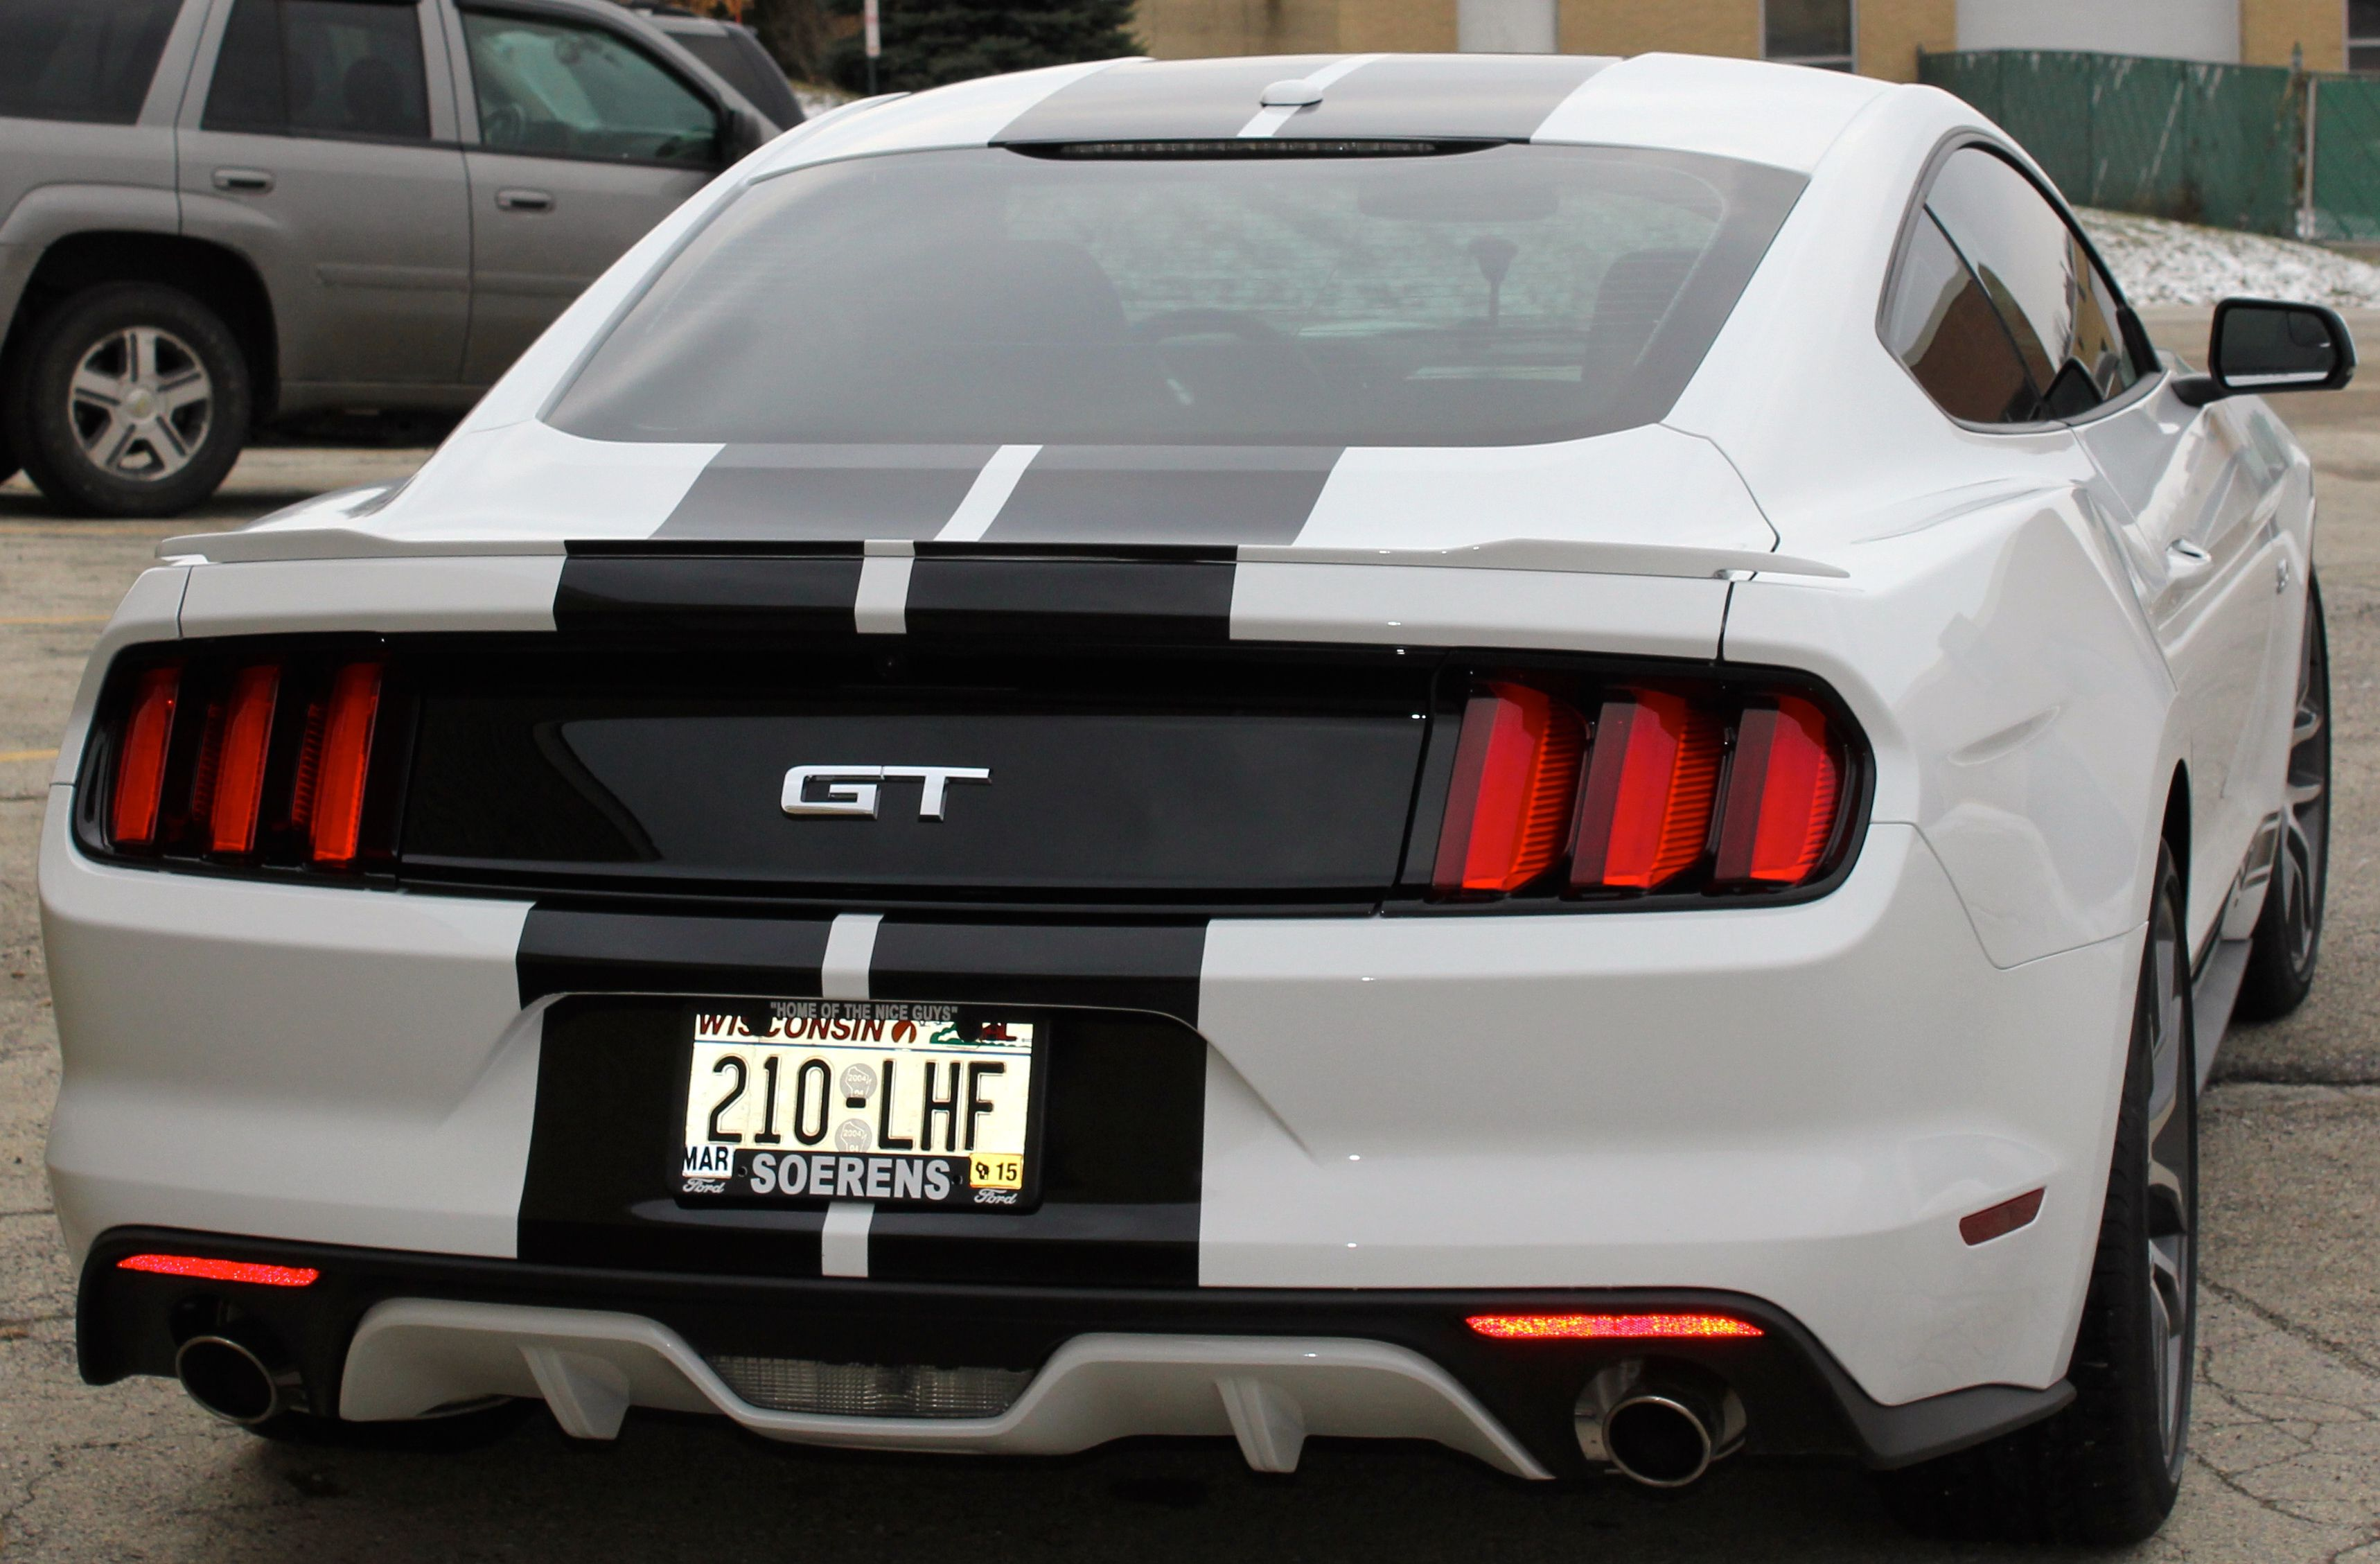 White Mustang Gt W Black Stripes Rear View Mustang Gt Ford Gt